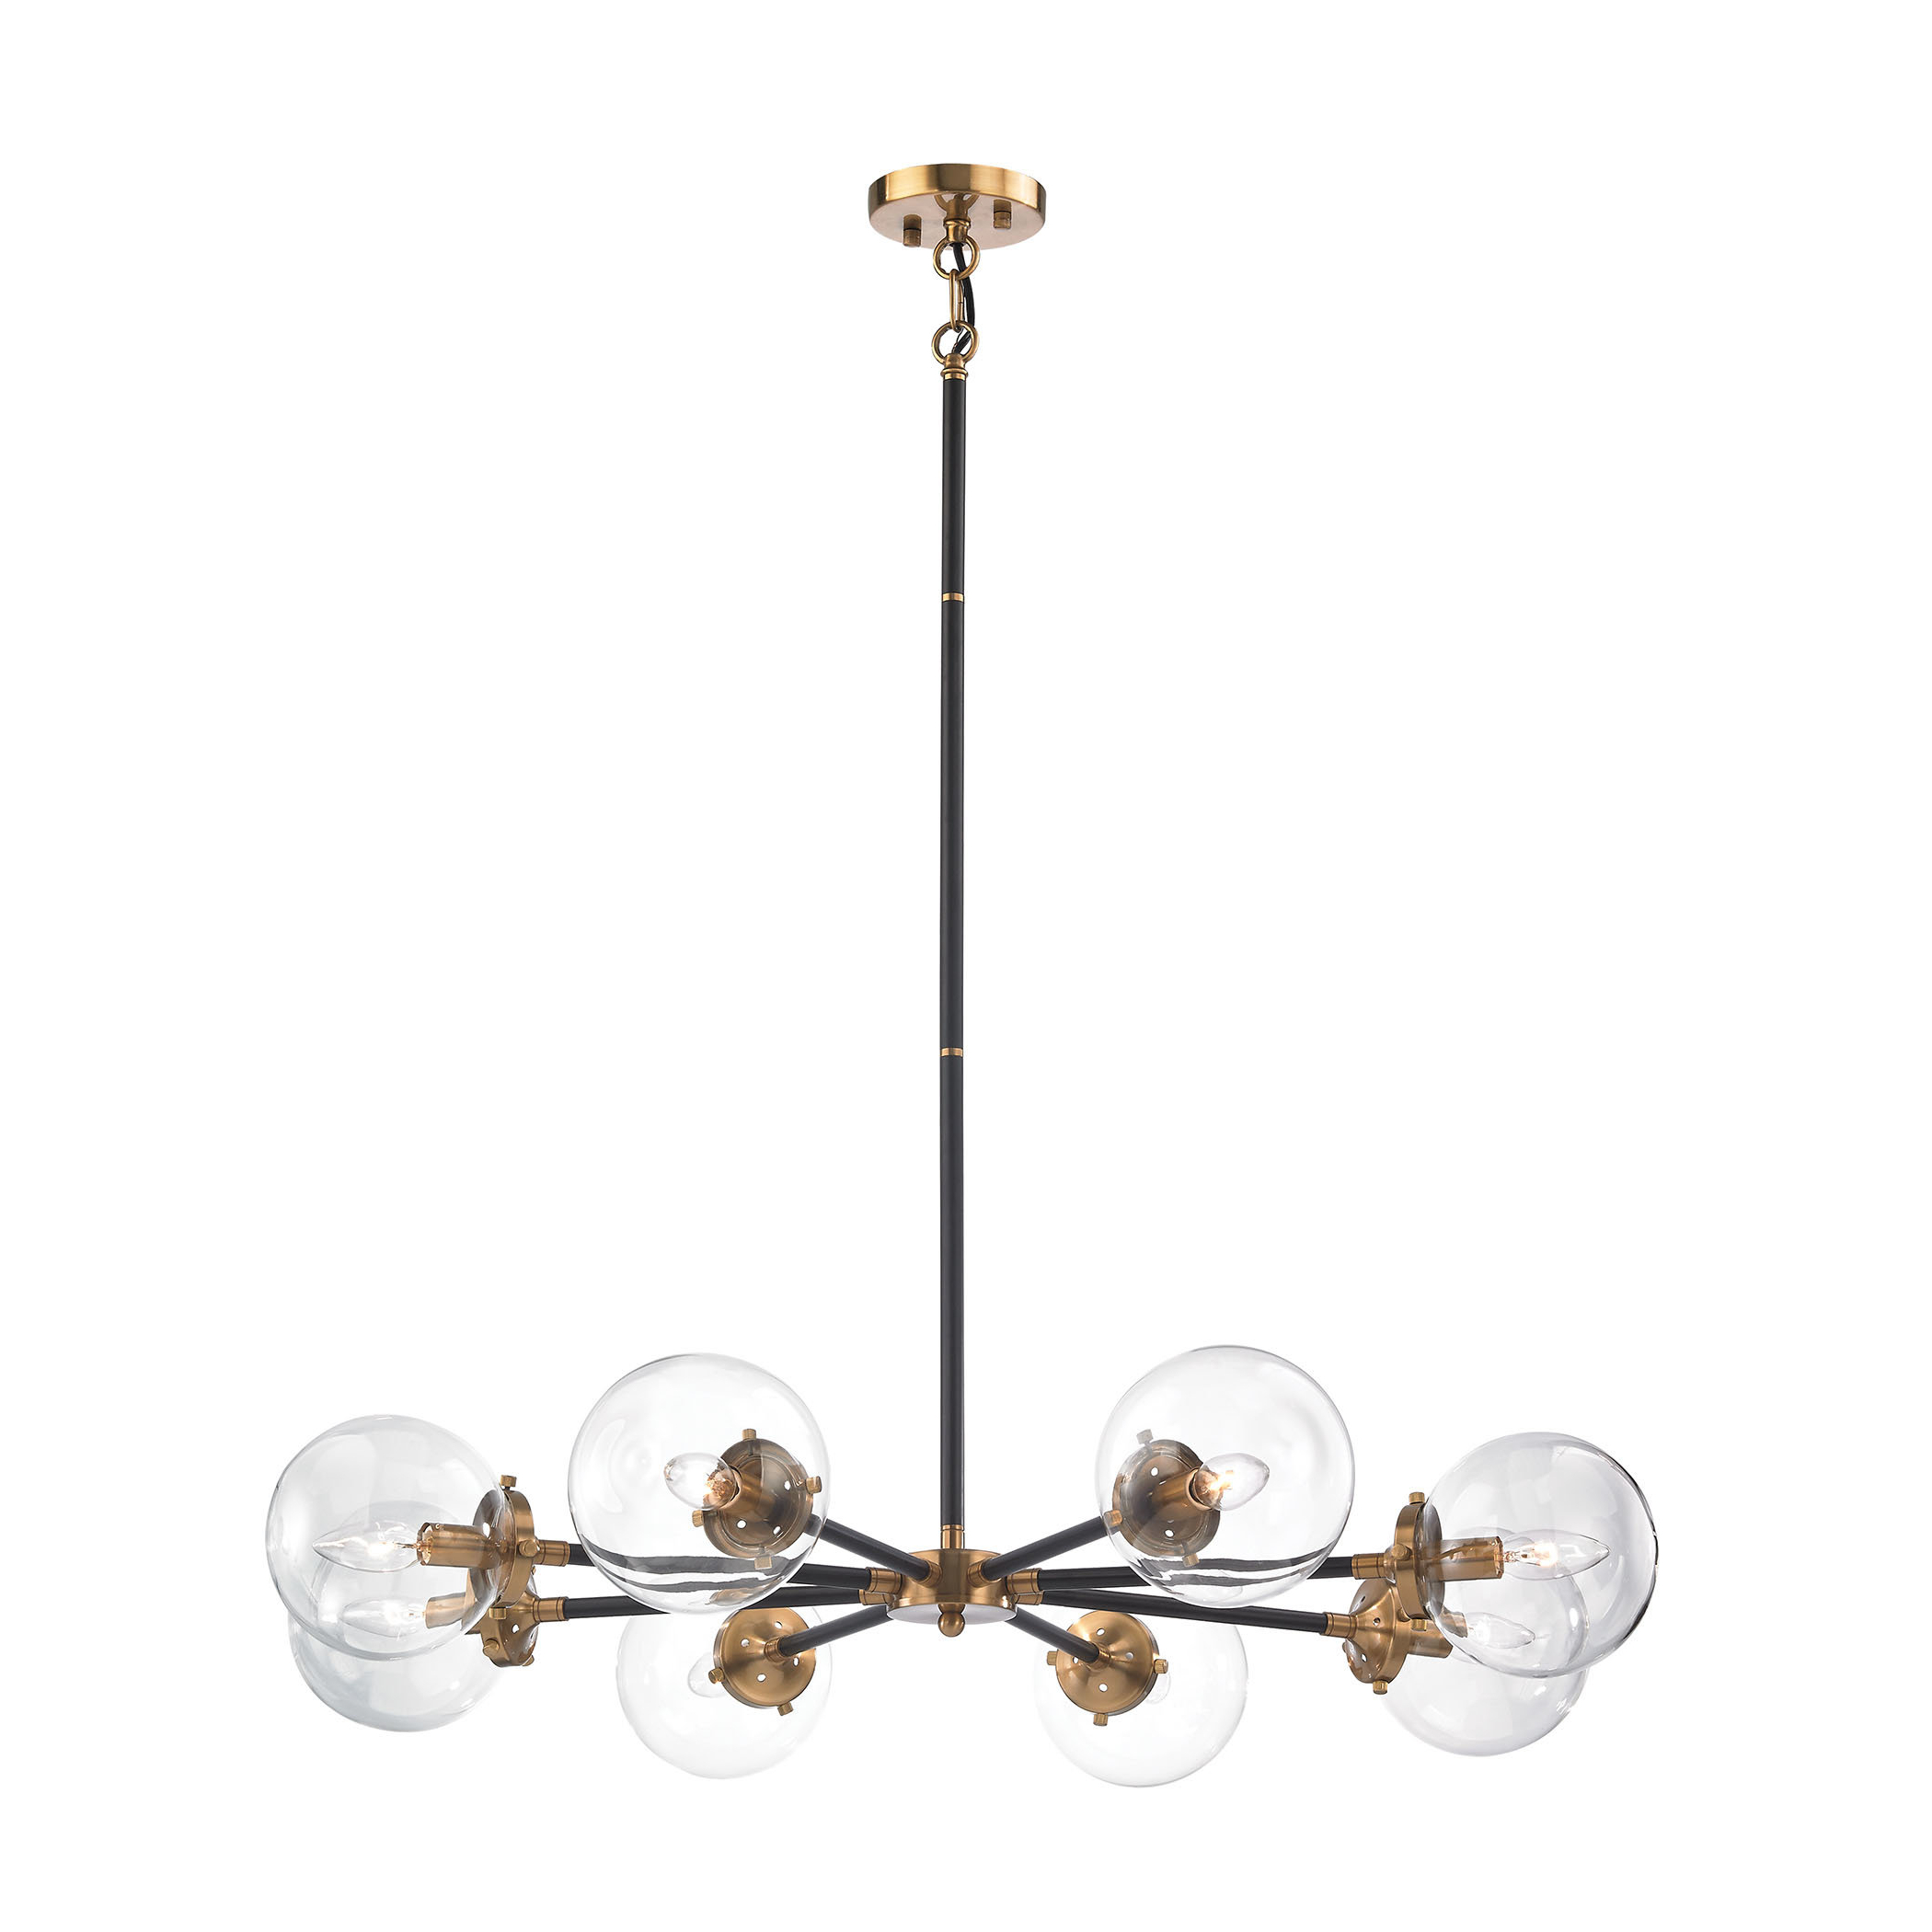 Shontelle 8 Light Chandelier Intended For Newest Asher 12 Light Sputnik Chandeliers (View 20 of 20)